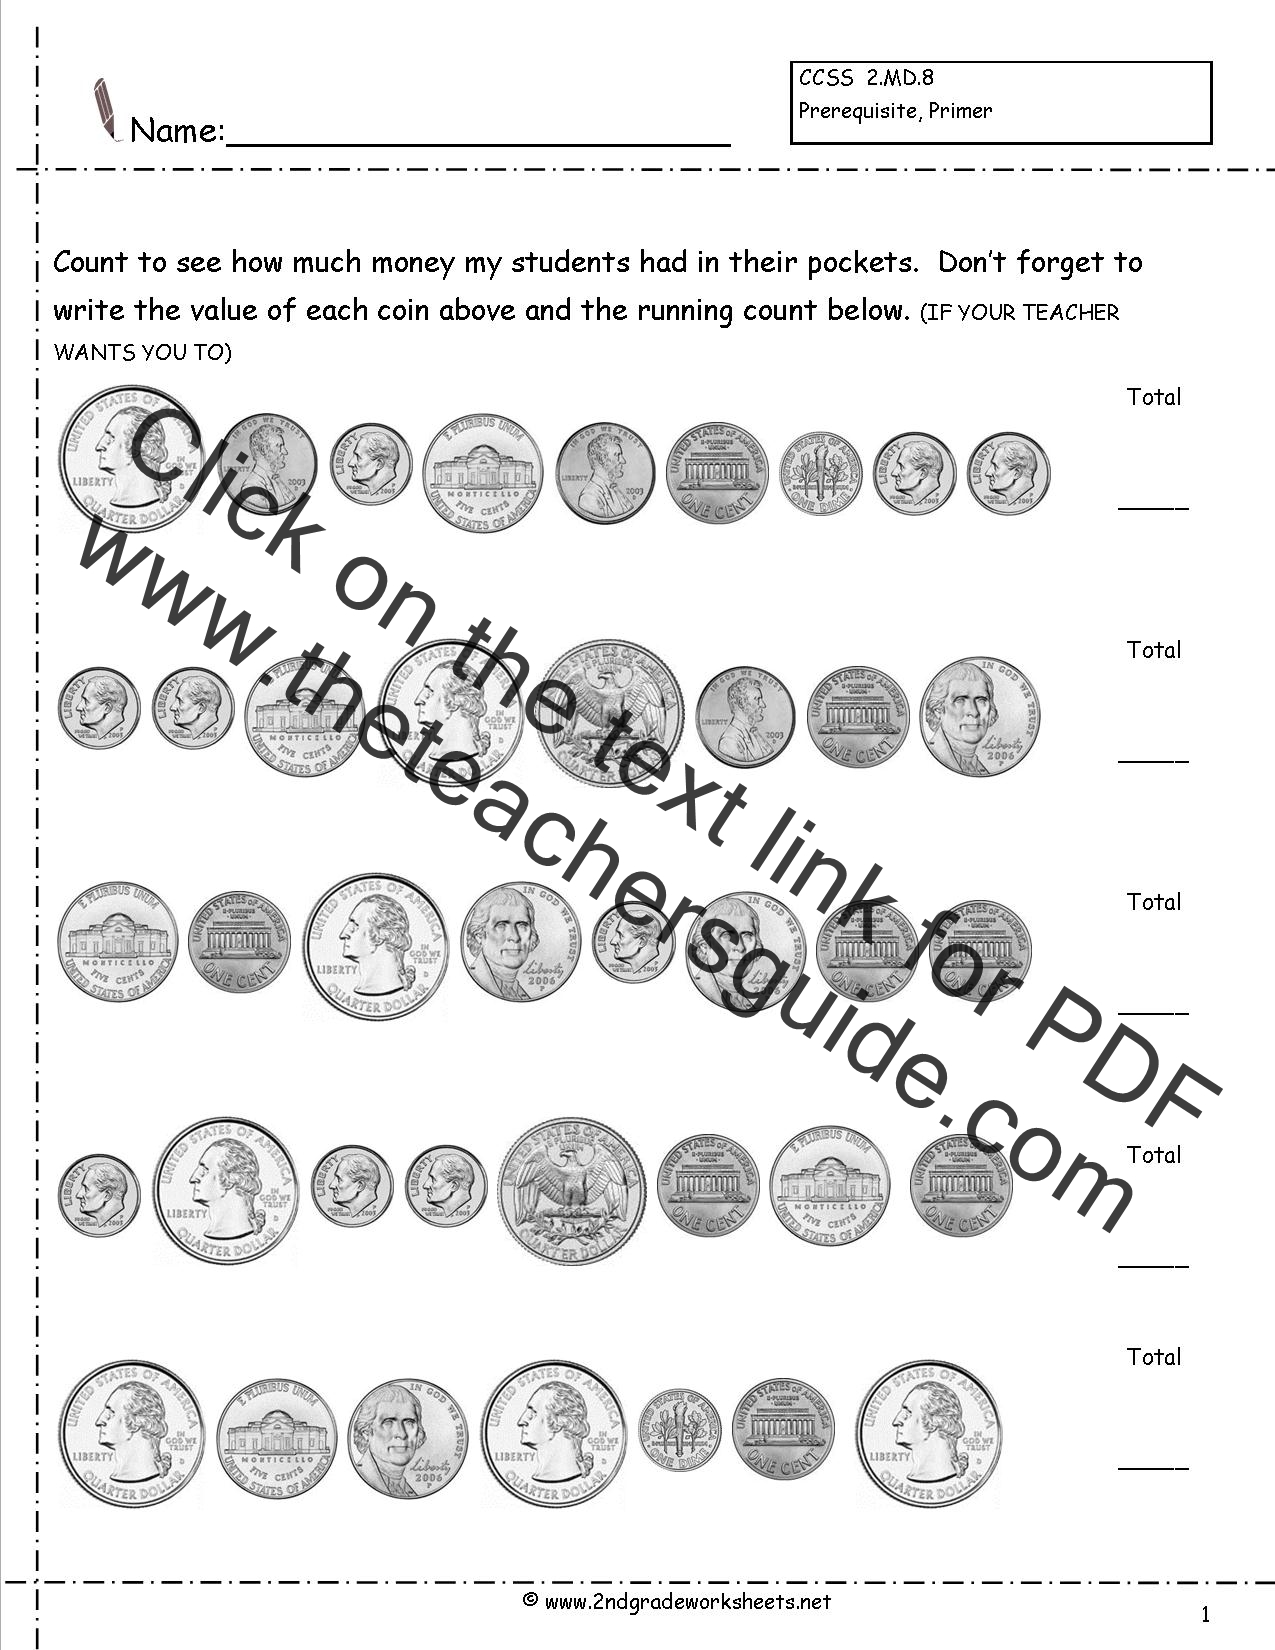 Worksheets Value Of Coins Worksheet counting coins and money worksheets printouts worksheets